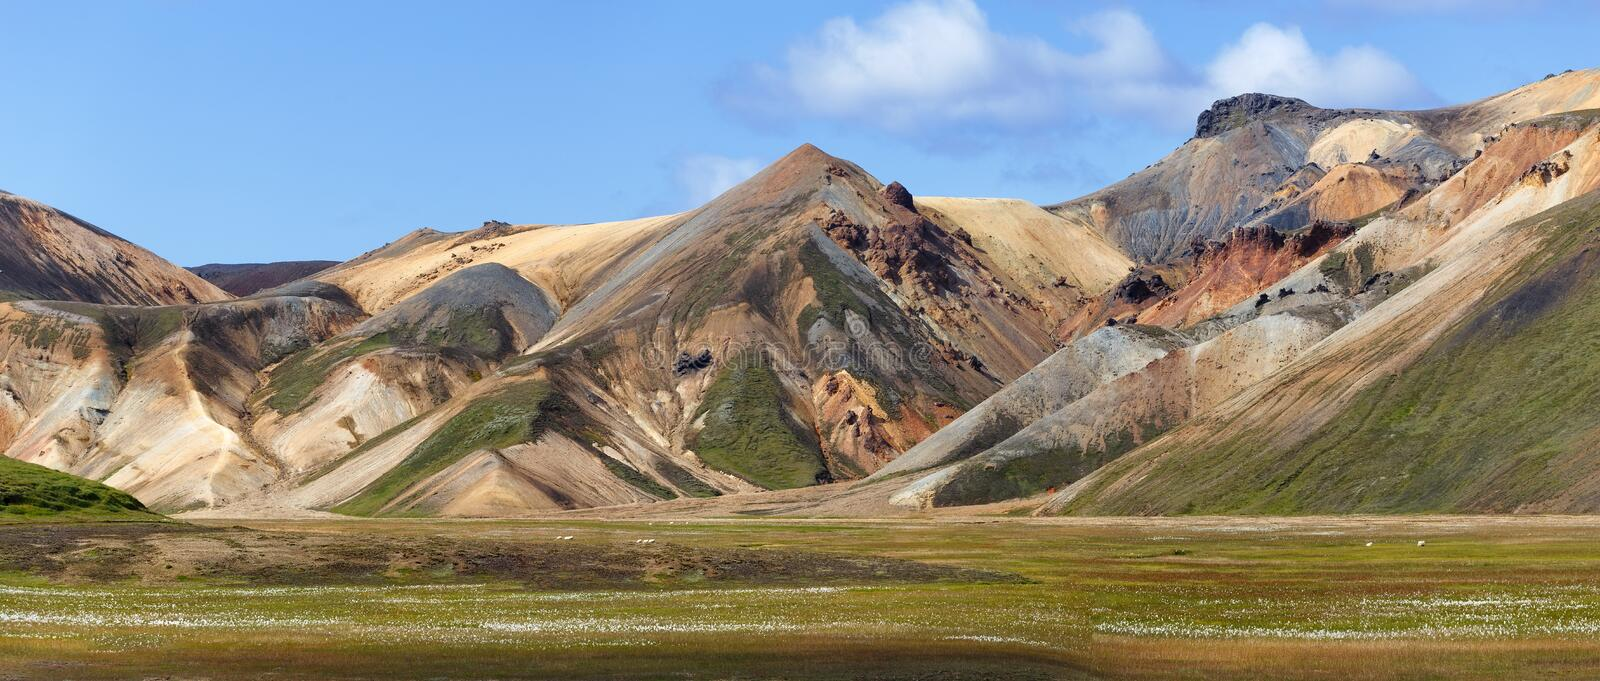 Landmannalaugar View, Iceland royalty free stock images